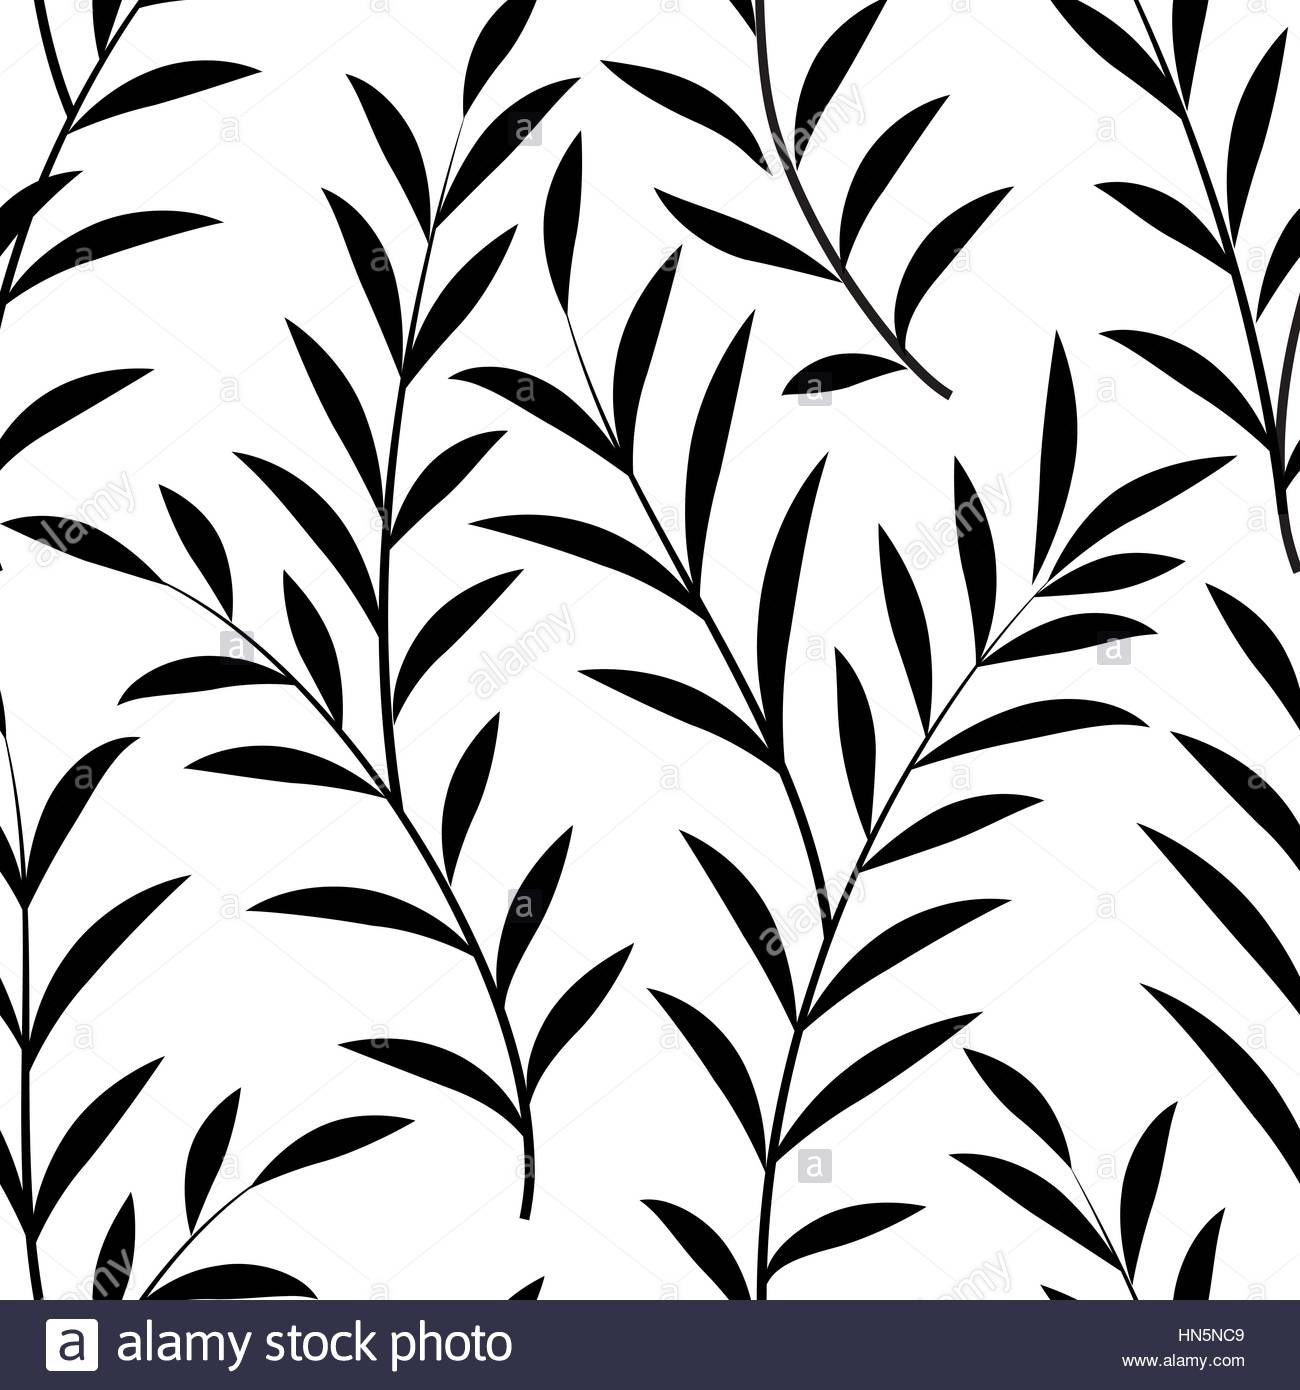 1300x1390 Abstract Floral Pattern Floral Leaves Silhouette Black And White